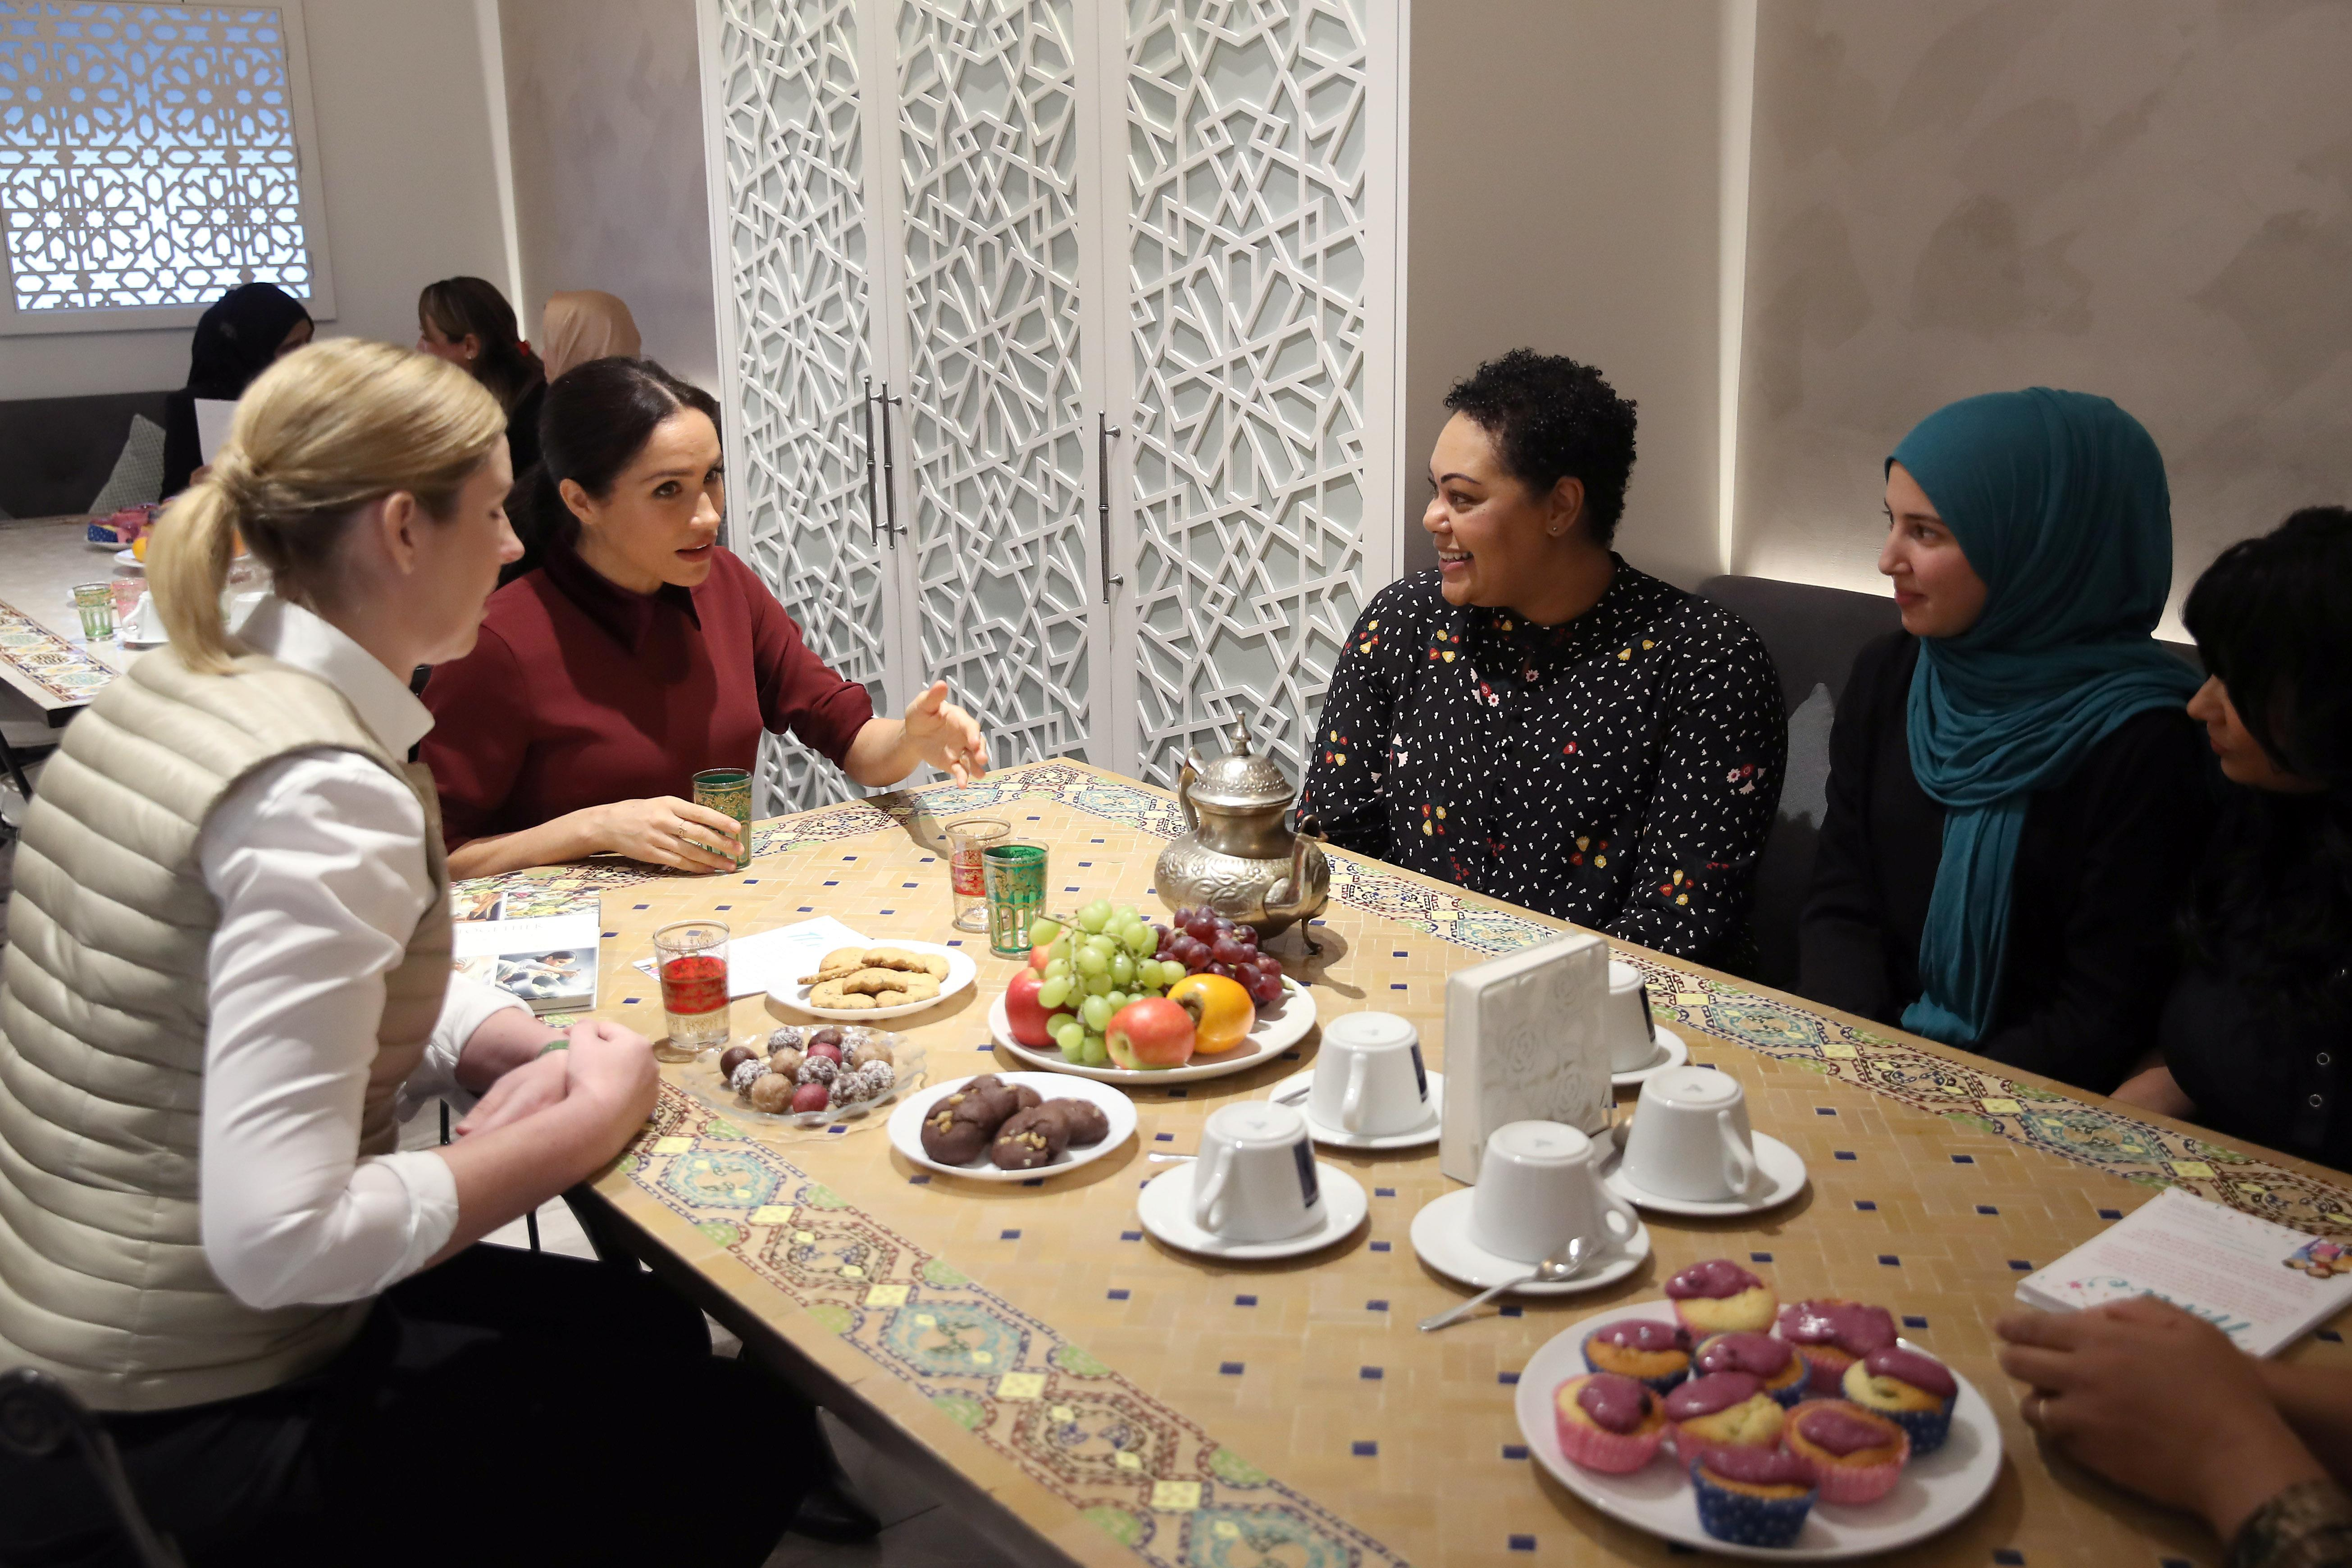 Britain's Meghan, Duchess of Sussex visits the Hubb Community Kitchen to see how funds raised by the 'Together: Our Community' cookbook are making a difference at Al Manaar, in London, Britain on November 21, 2018. Chris Jackson/Pool via REUTERS